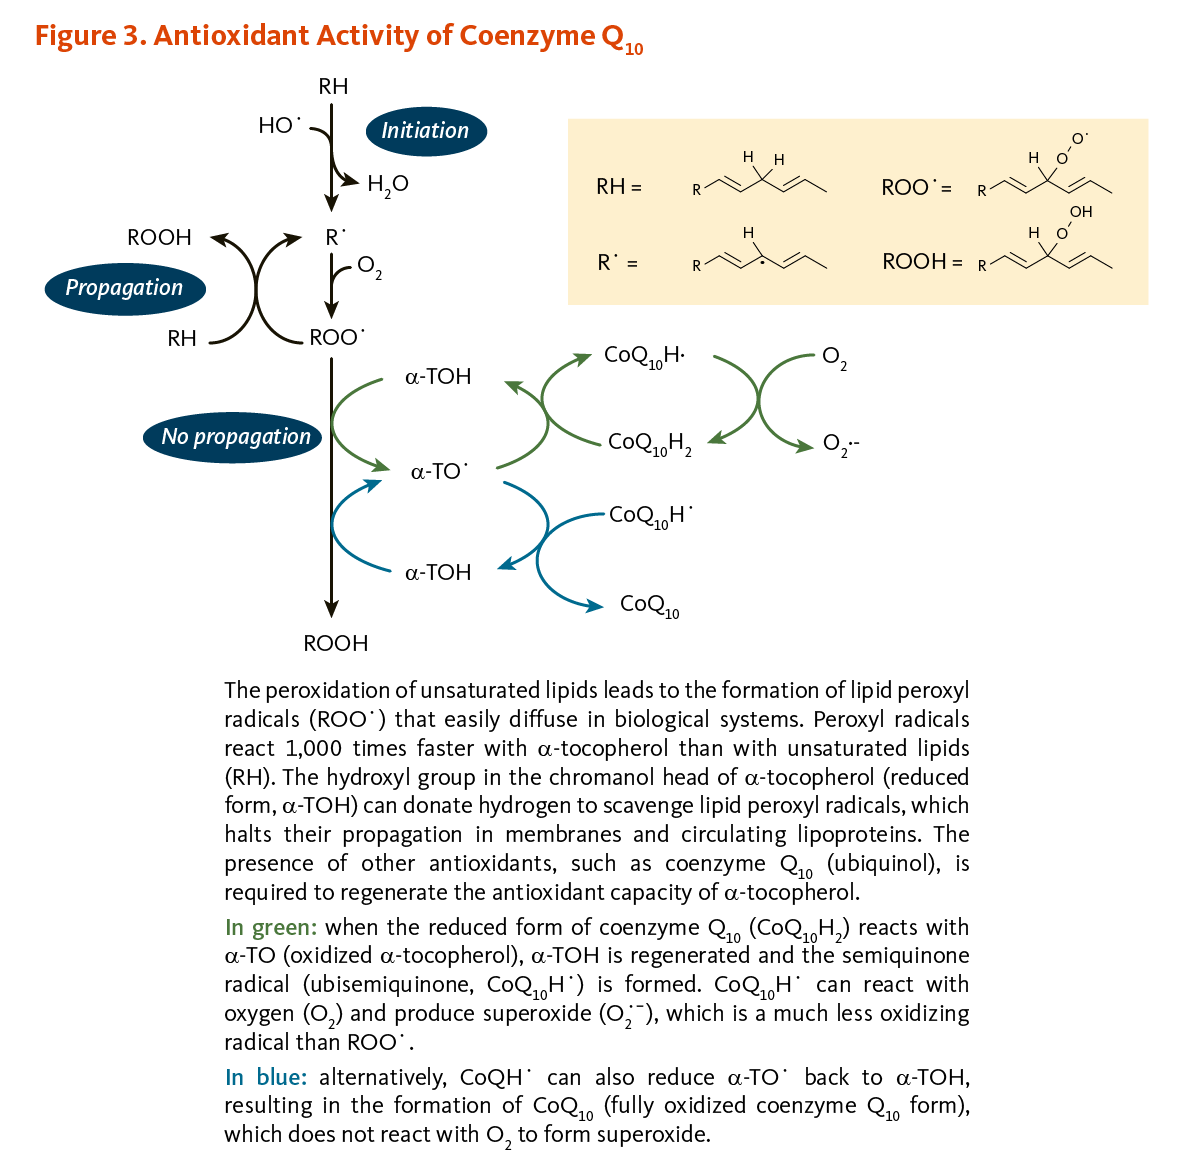 hight resolution of figure 3 antioxidant activity of coenzyme q10 the peroxidation of unsaturated lipids leads to